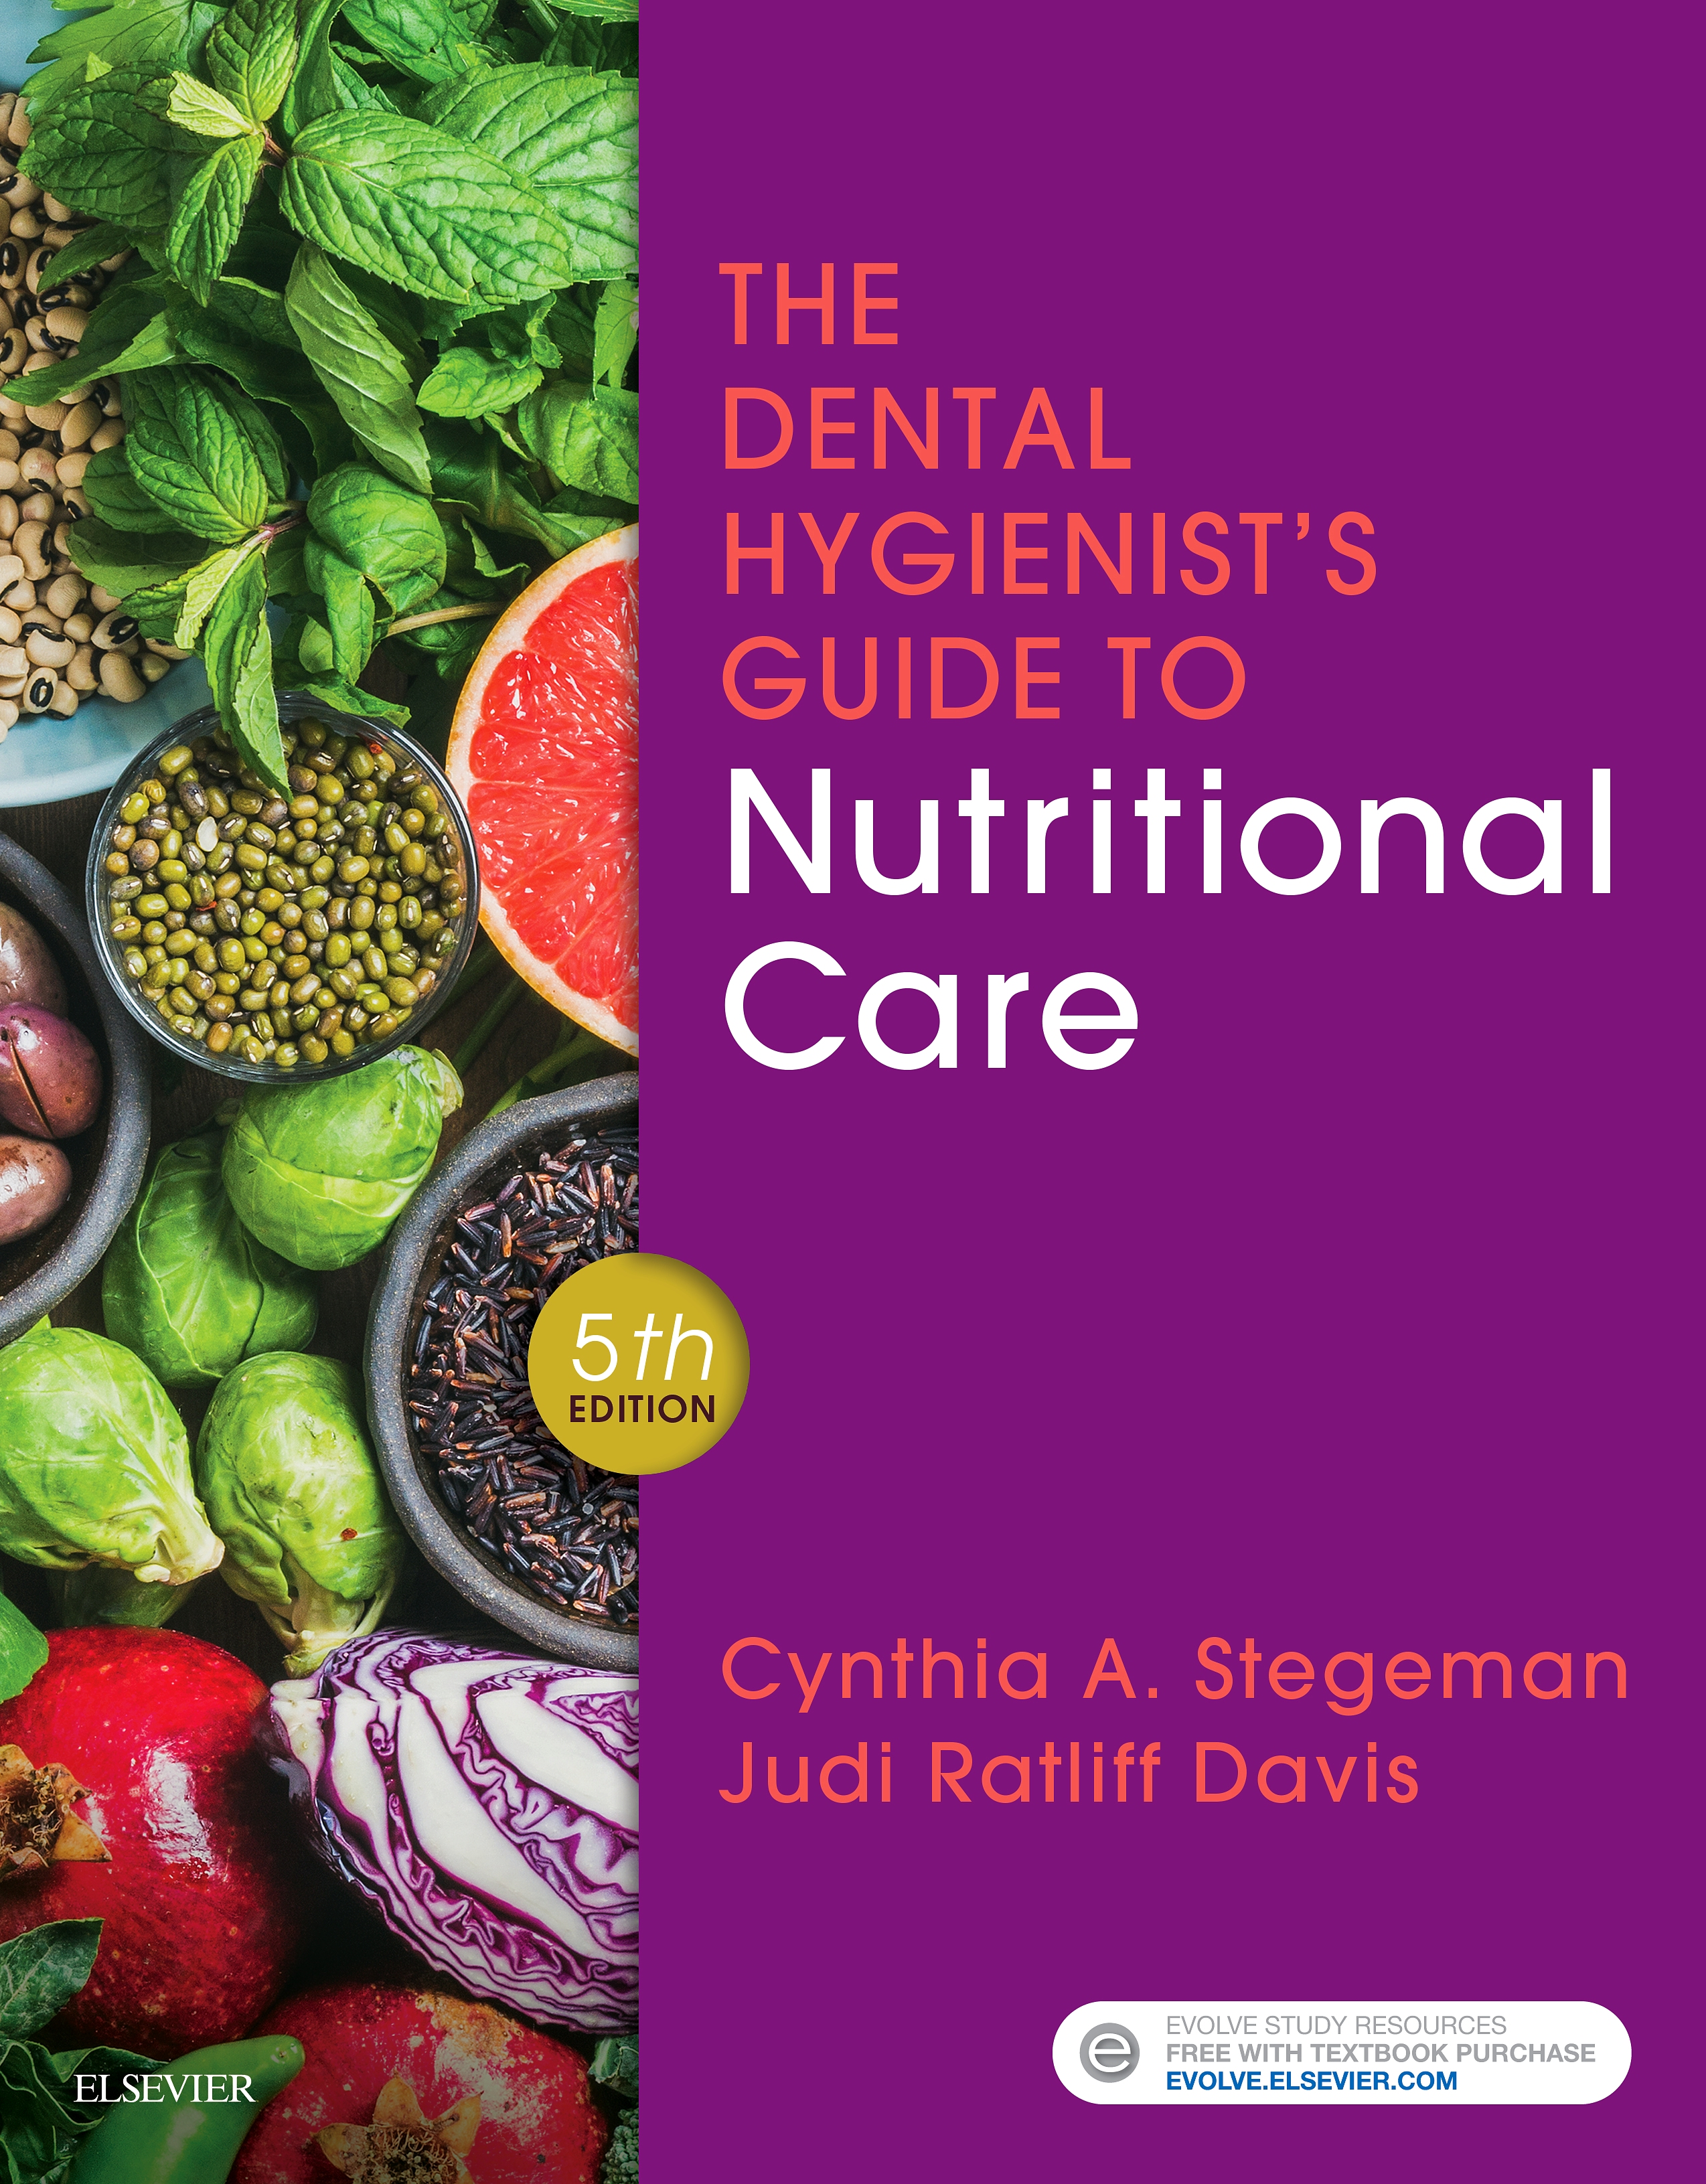 Evolve Resources for The Dental Hygienist's Guide to Nutritional Care, 5th Edition